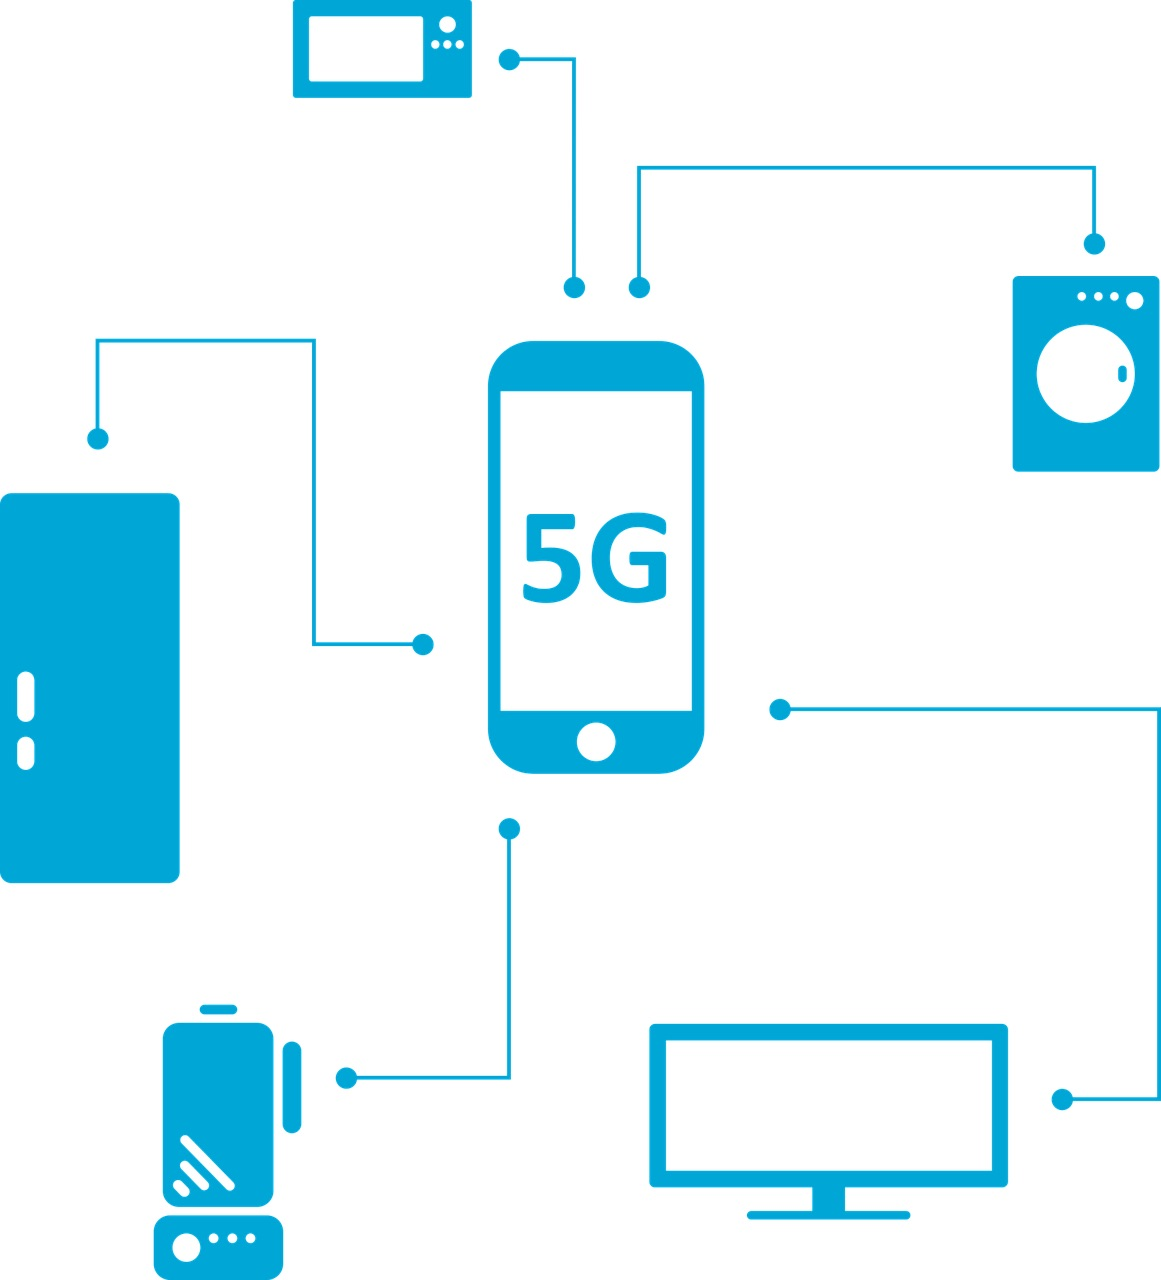 5G networks to go live in LatAm despite COVID-19, auction delays